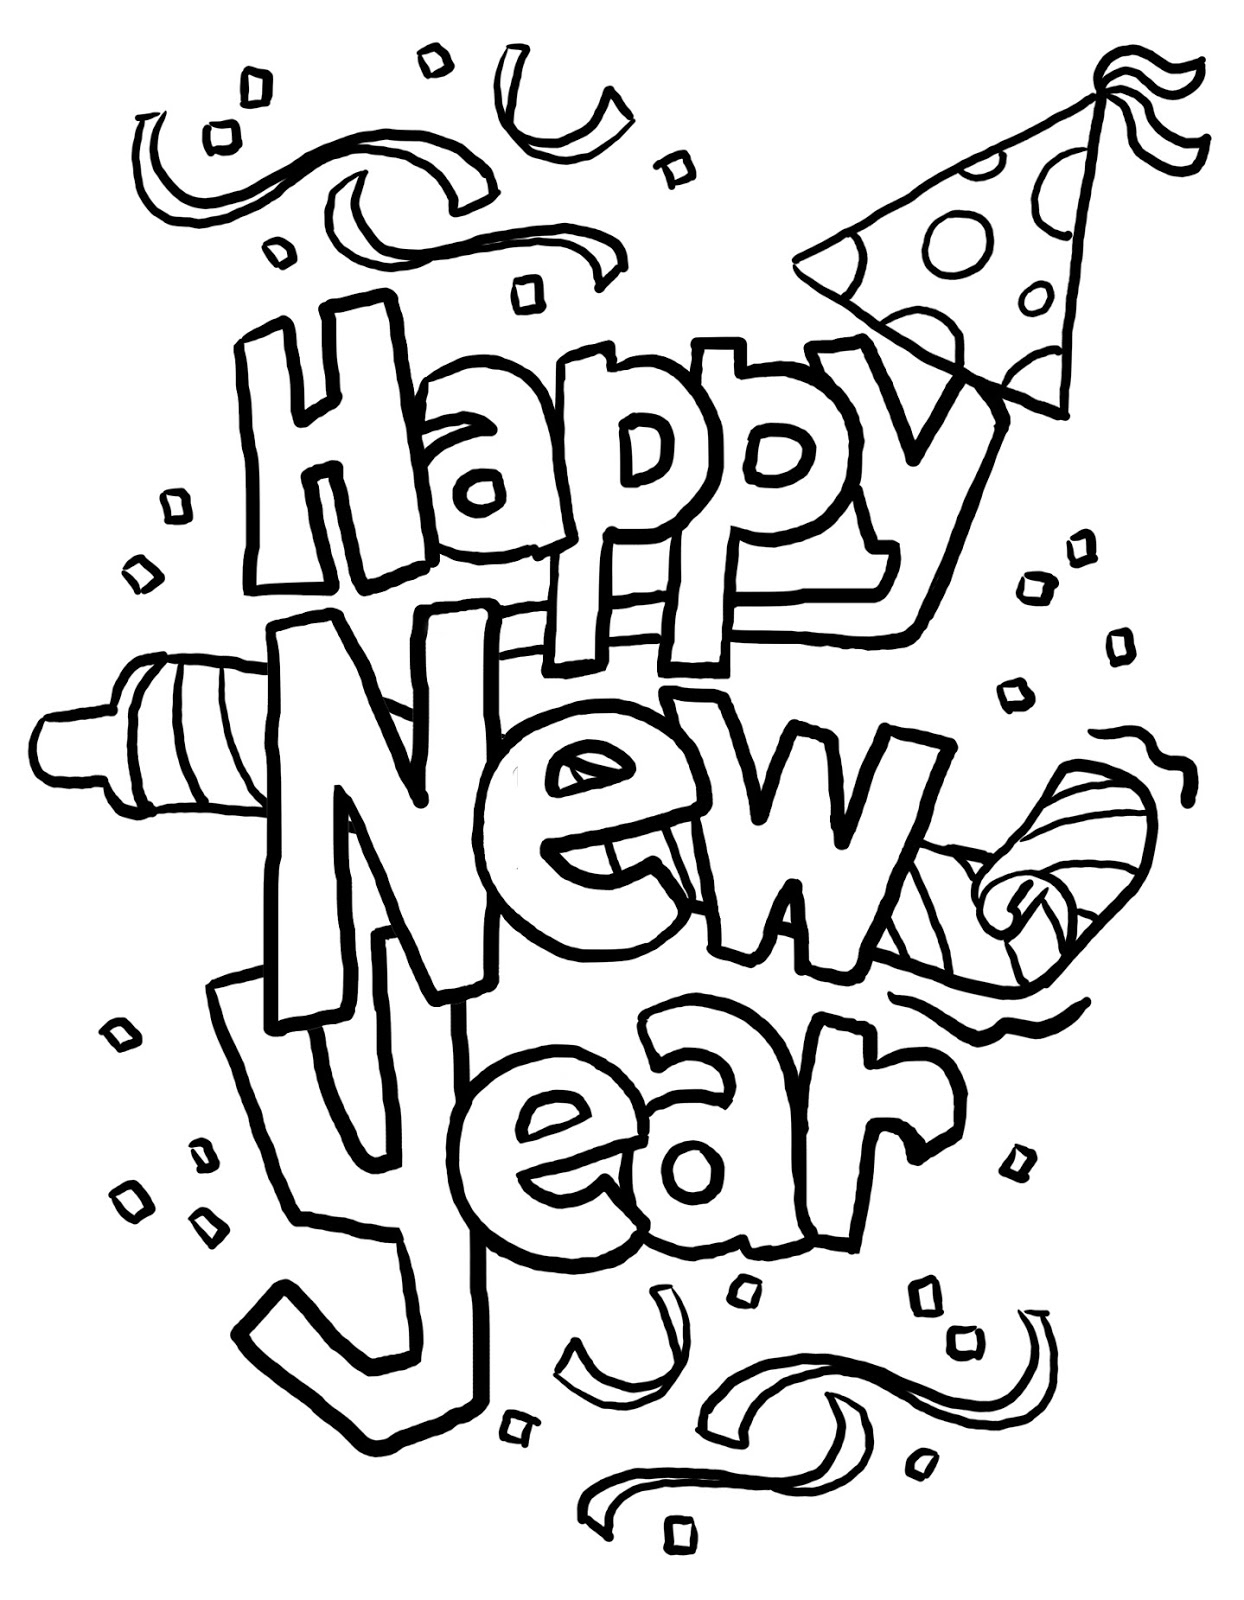 Printables4Kids free coloring pages, word search puzzles  - new years coloring pages printable